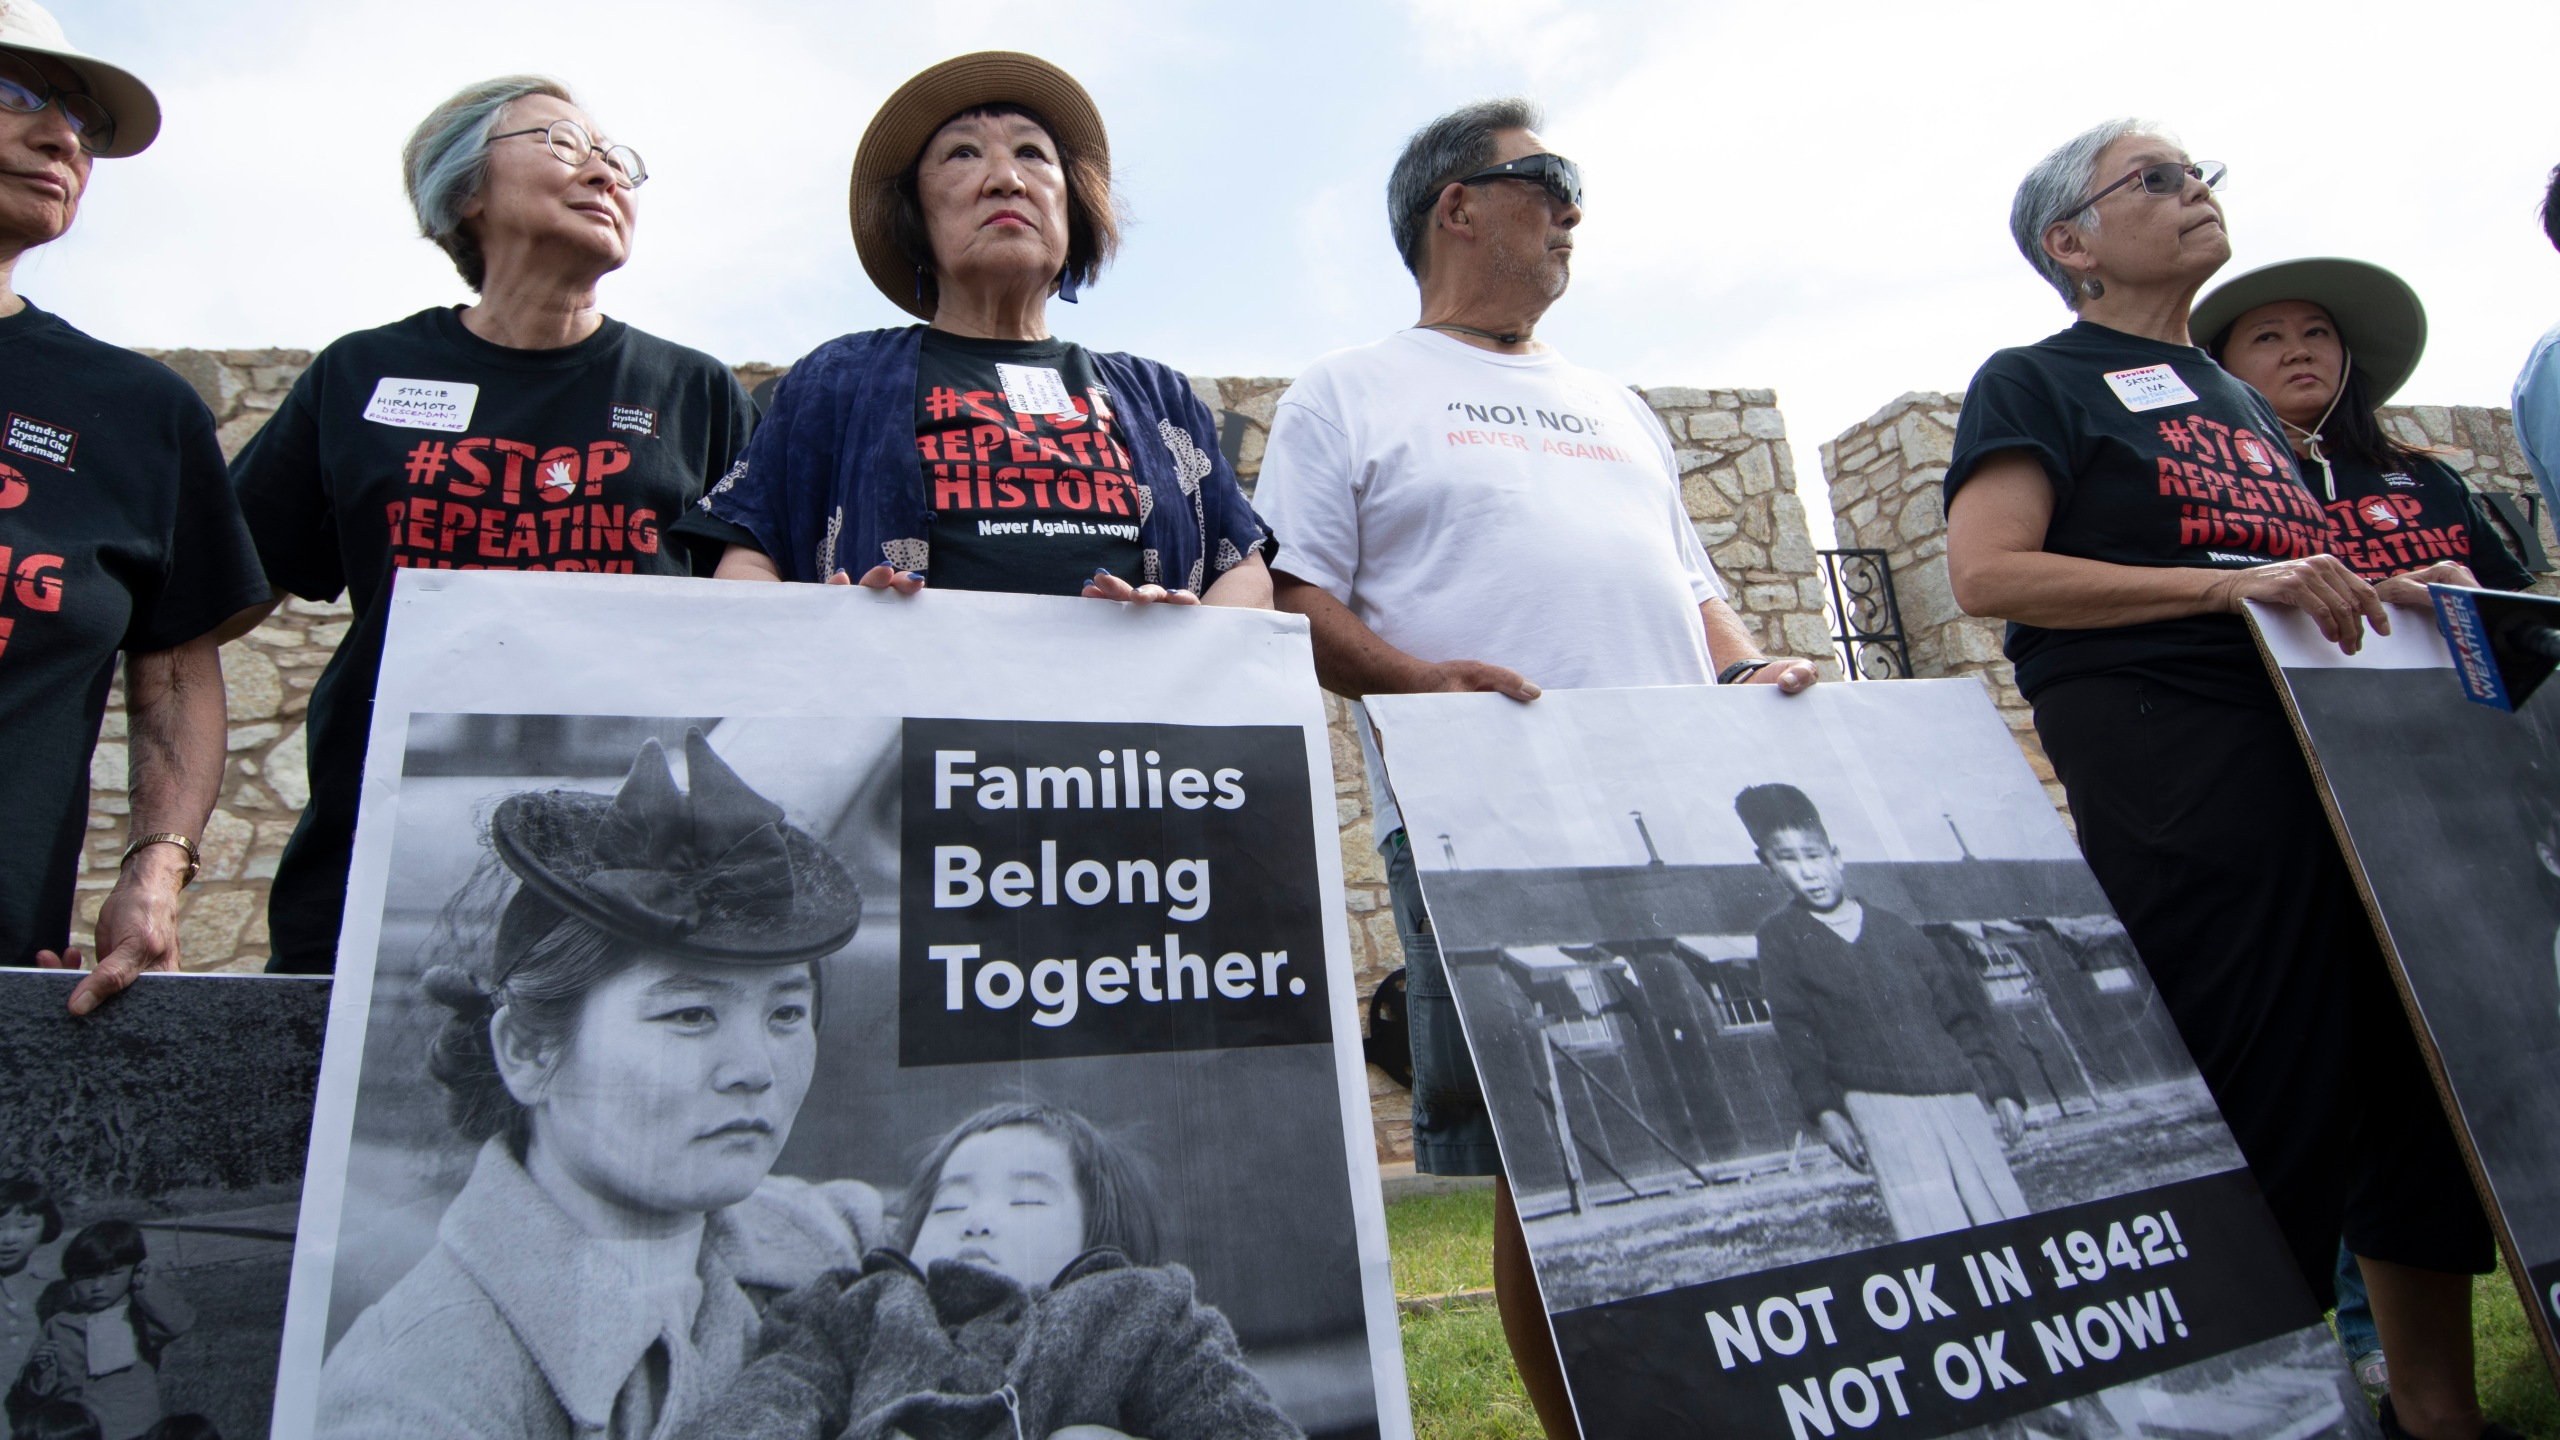 Japanese American protesters pose with photos of themselves taken while they were in relocation camps during World War II to rally against the detainment of migrant children at Fort Sill on June 22, 2019 in Lawton, Oklahoma. (Credit: J Pat Carter/Getty Images)